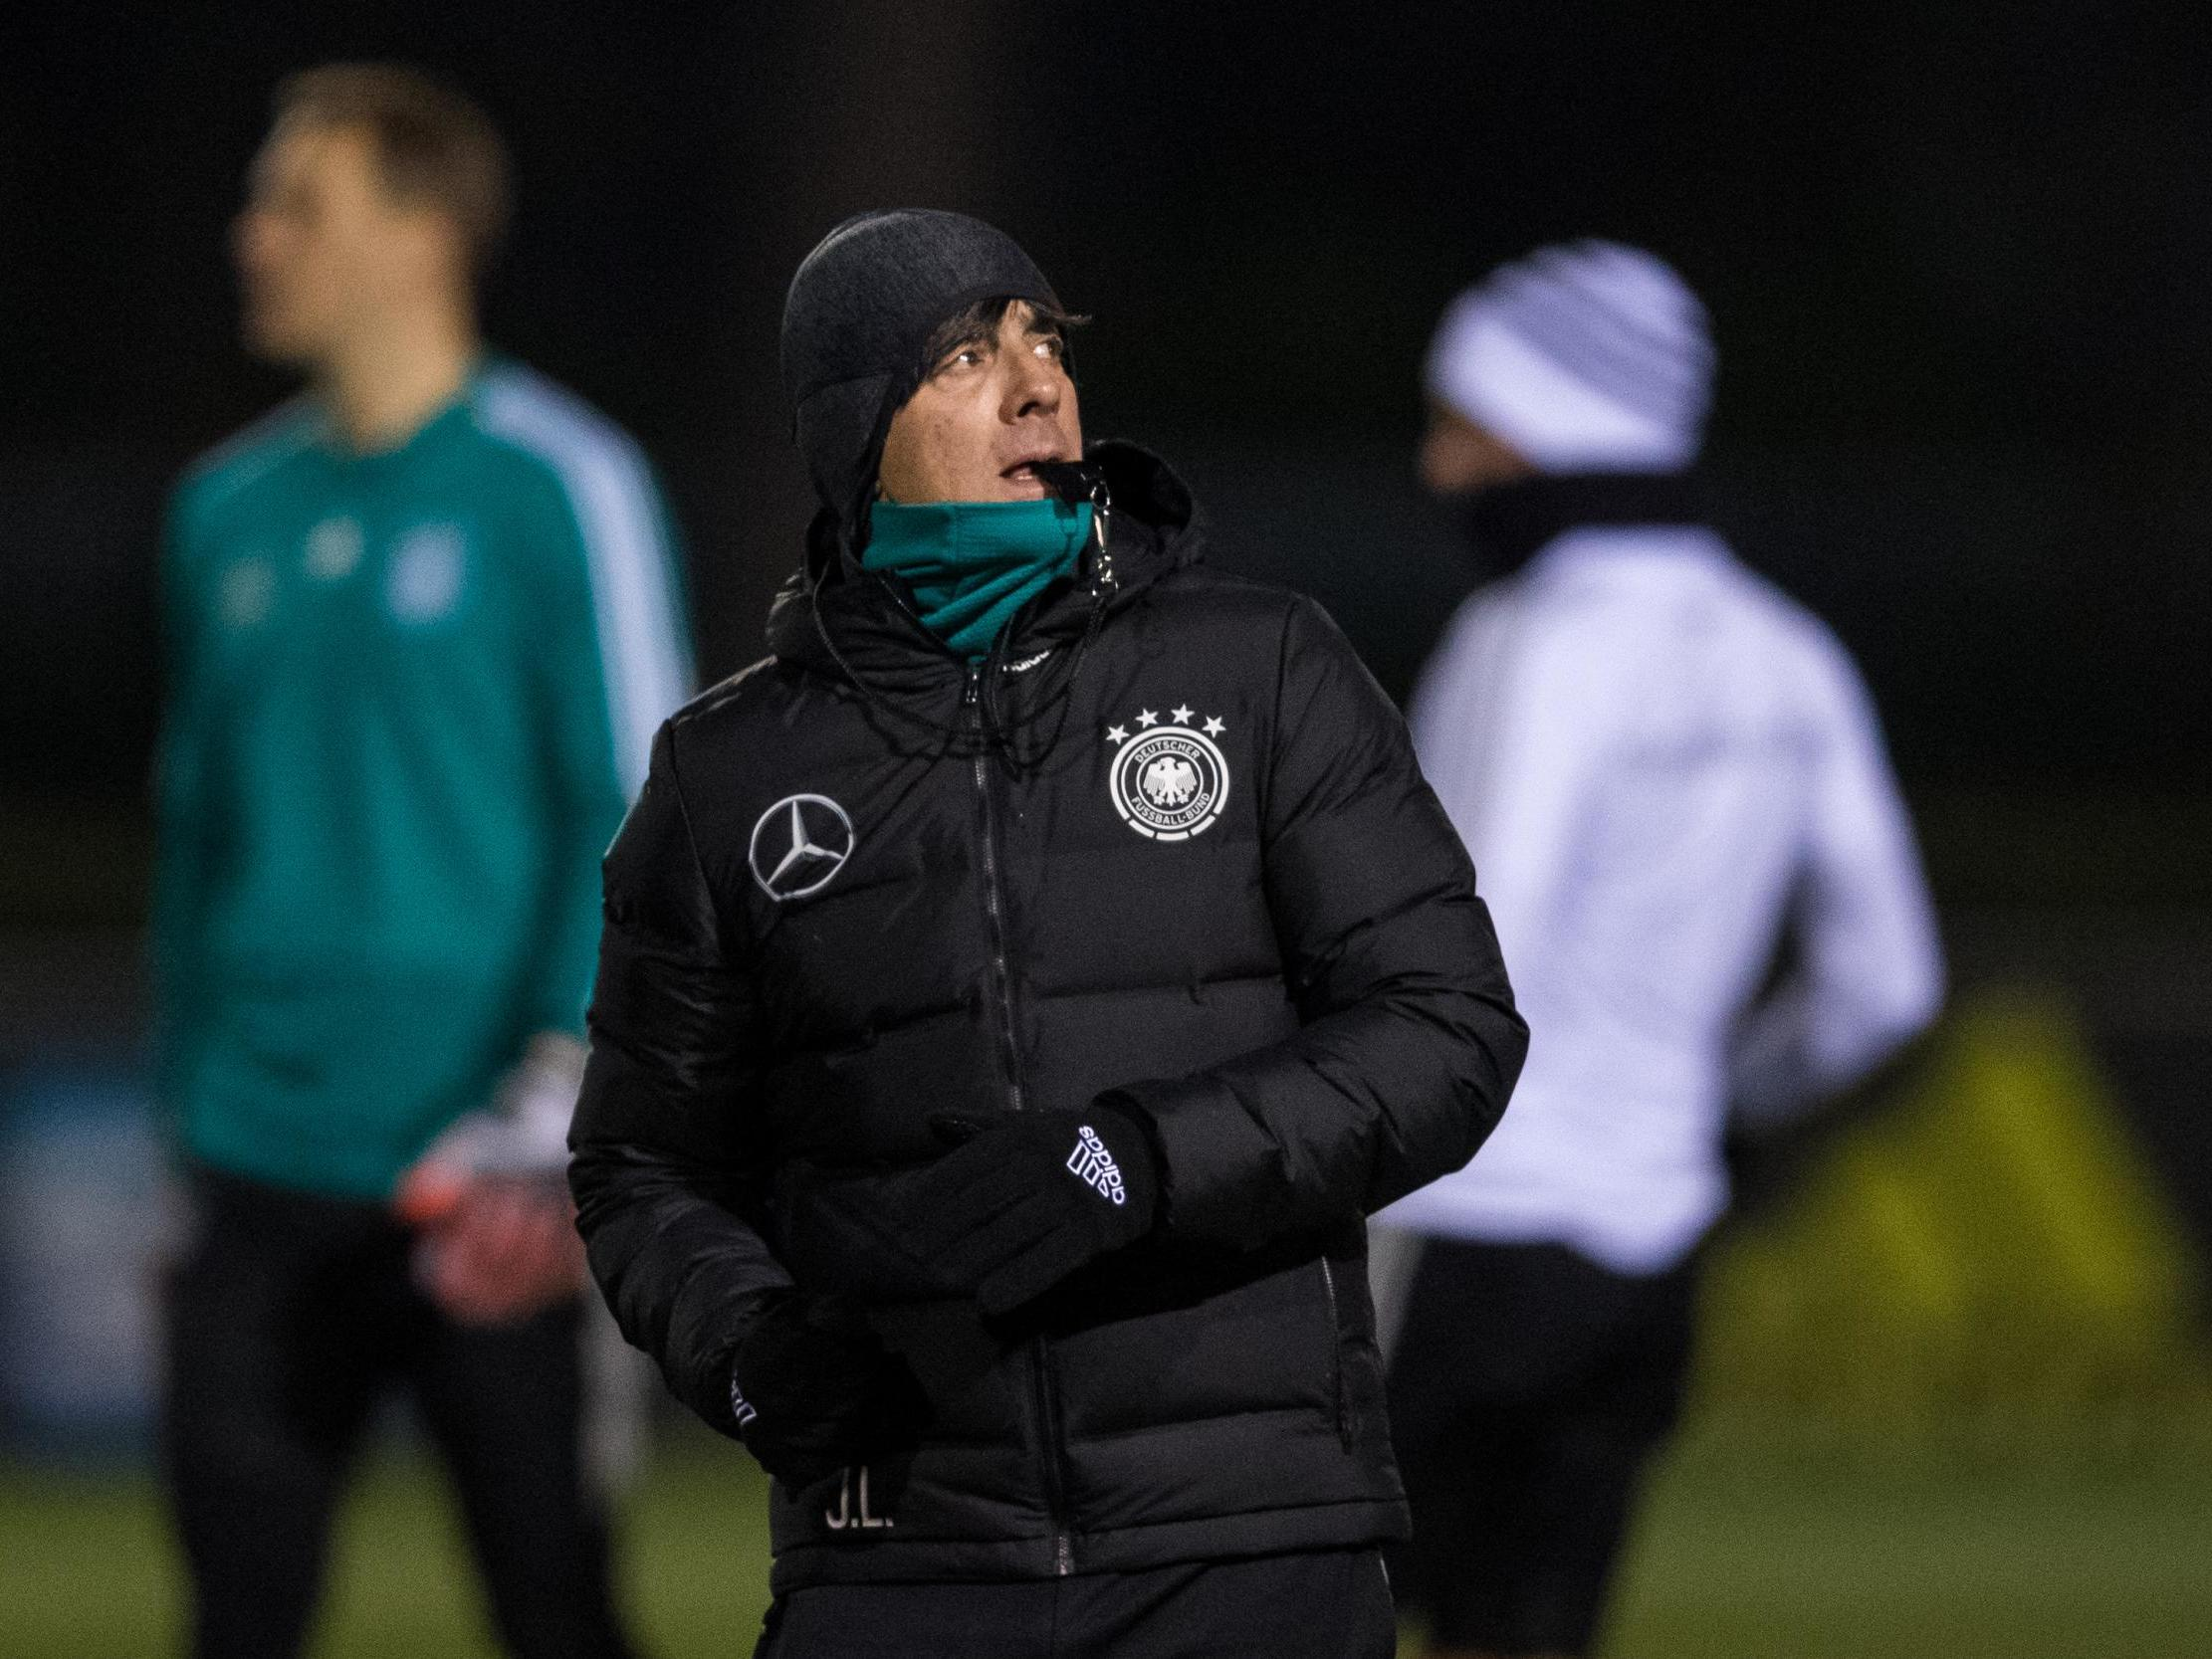 Germany v Netherlands, Nations League: What time, where can I watch, how to stream, odds and more